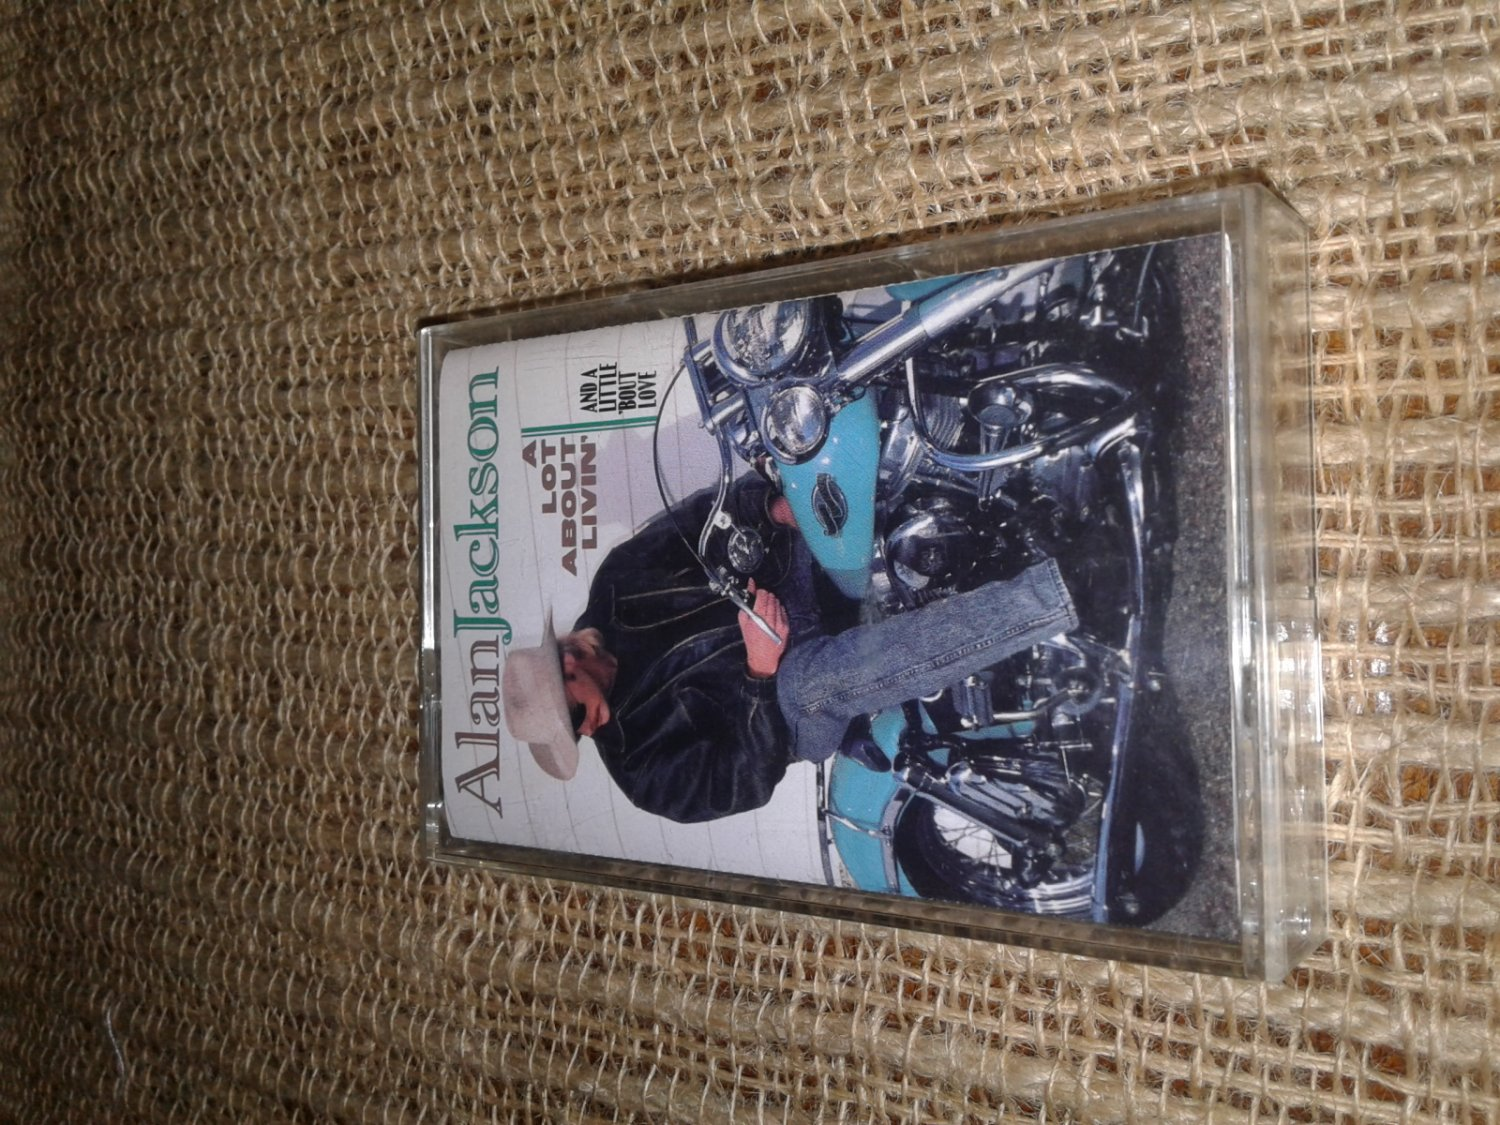 1992 Alan Jackson, a lot about livin' and a little 'bout love, cassette tape